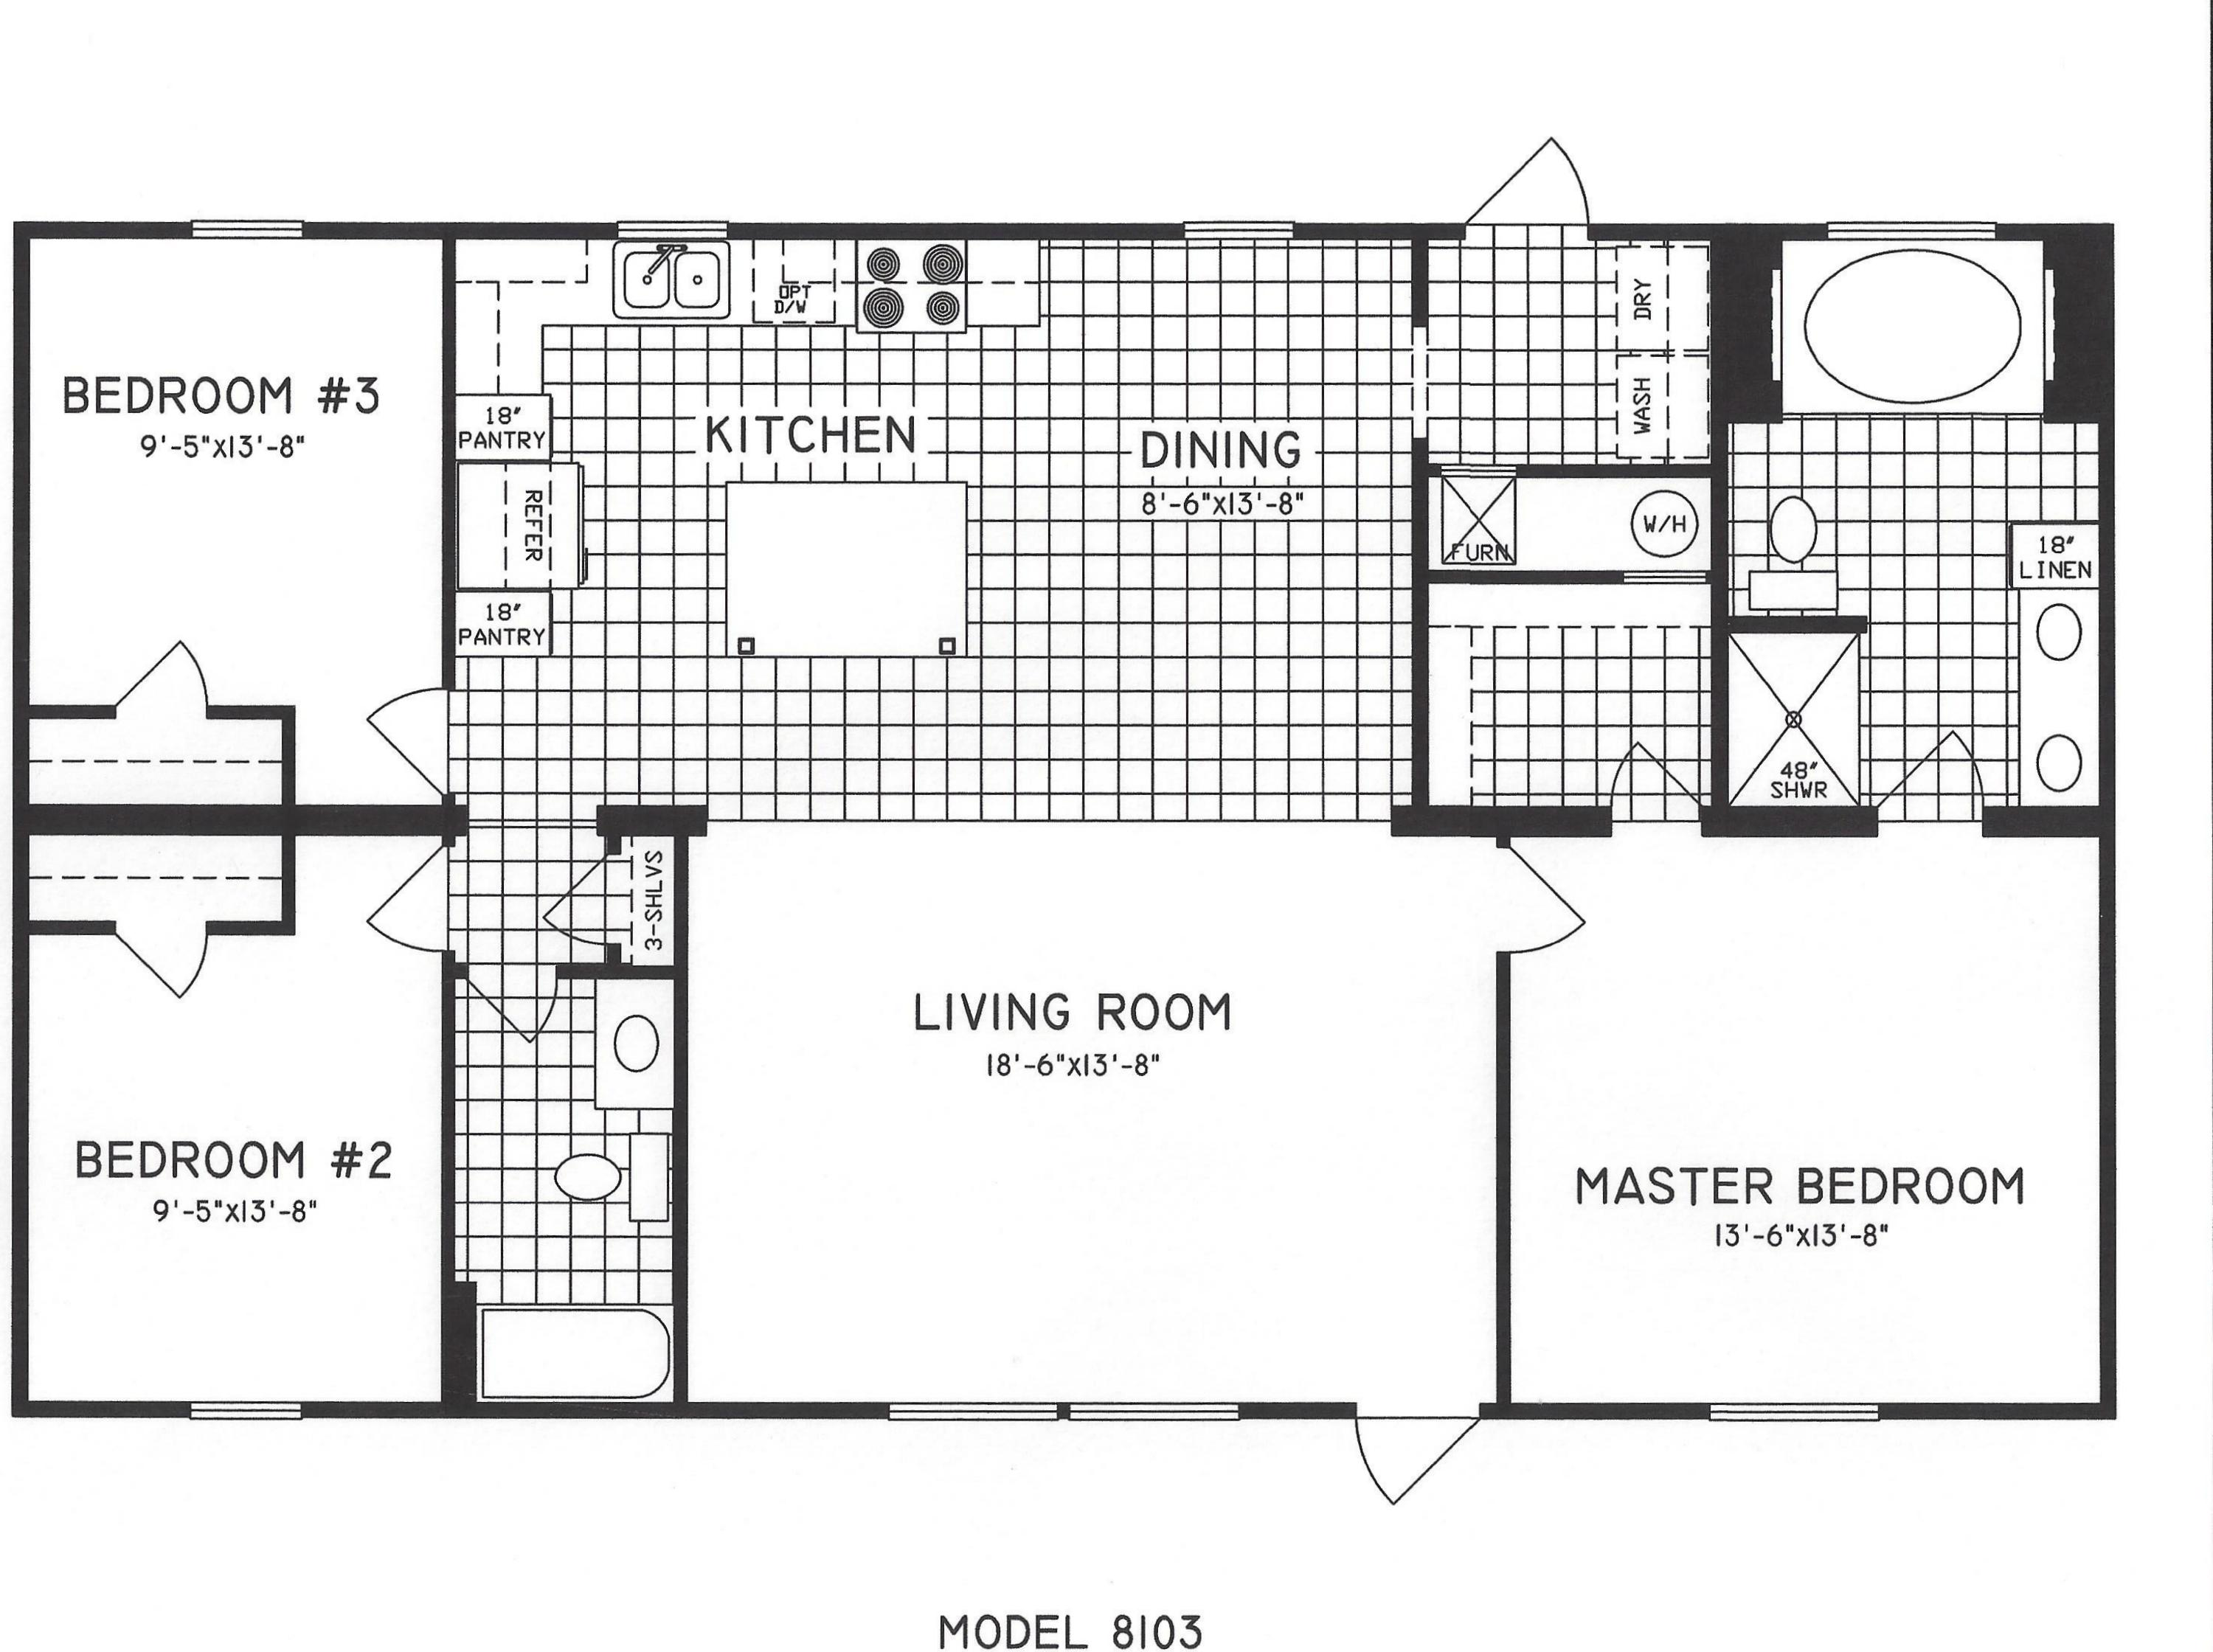 3 bedroom floor plan c 8103 hawks homes manufactured for 3 bedroom home floor plans